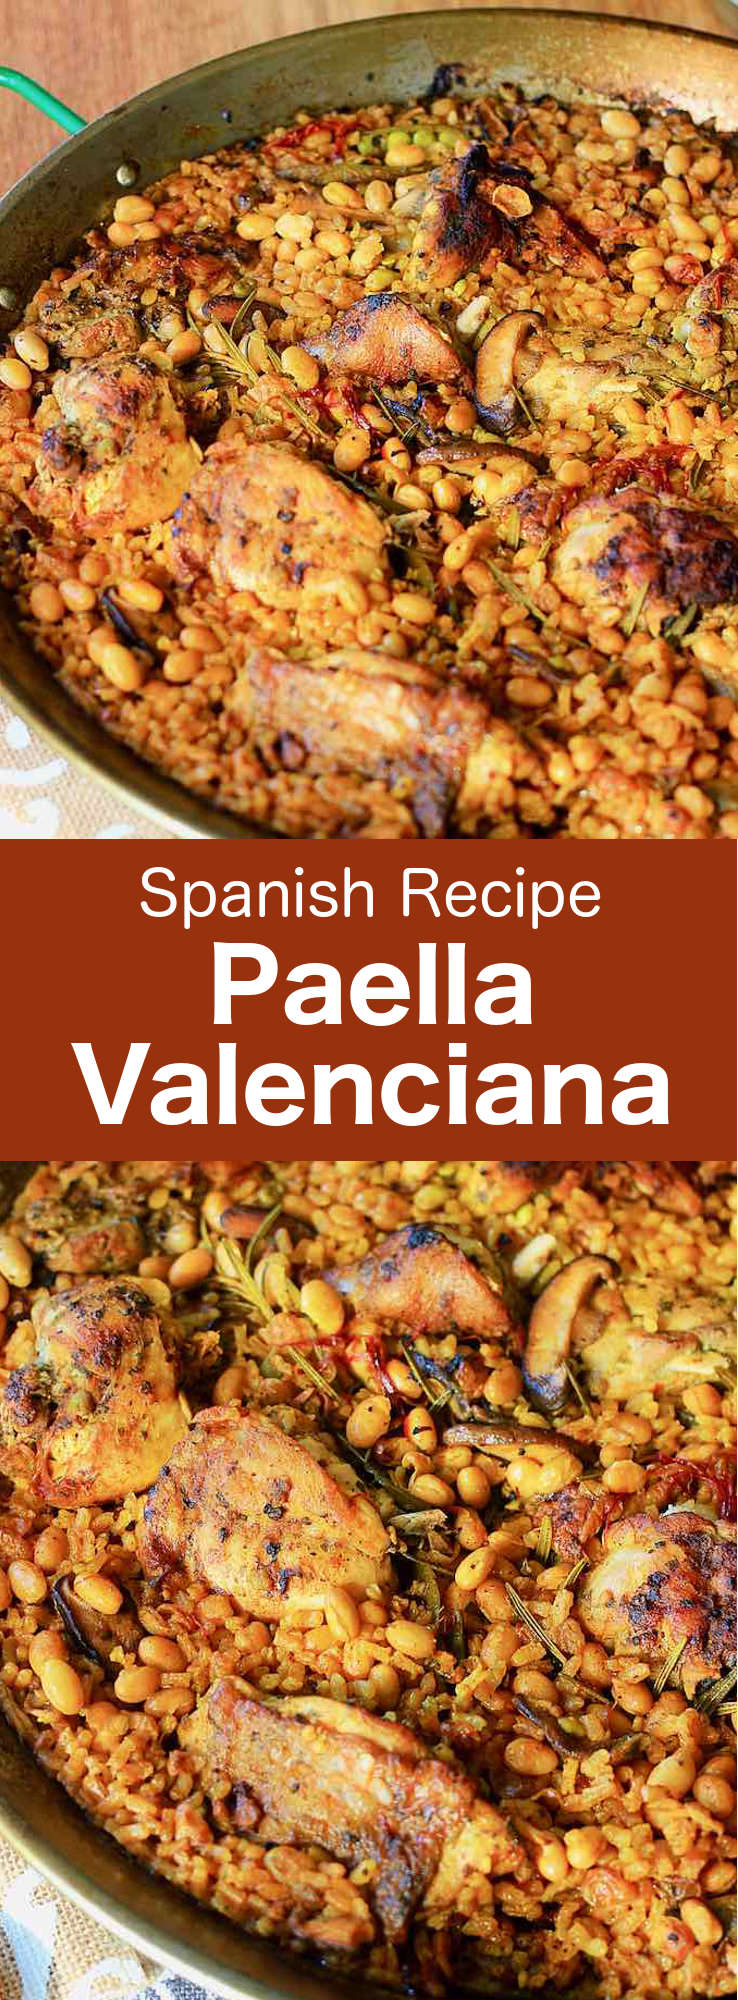 Paella Valenciana is the original Spanish rice dish that traces its modern roots in the mid-19th century on the east coast of Spain. #SpanishCuisine #Spain #SpanishRecipe #SpanishFood #WorldCuisine #196flavors